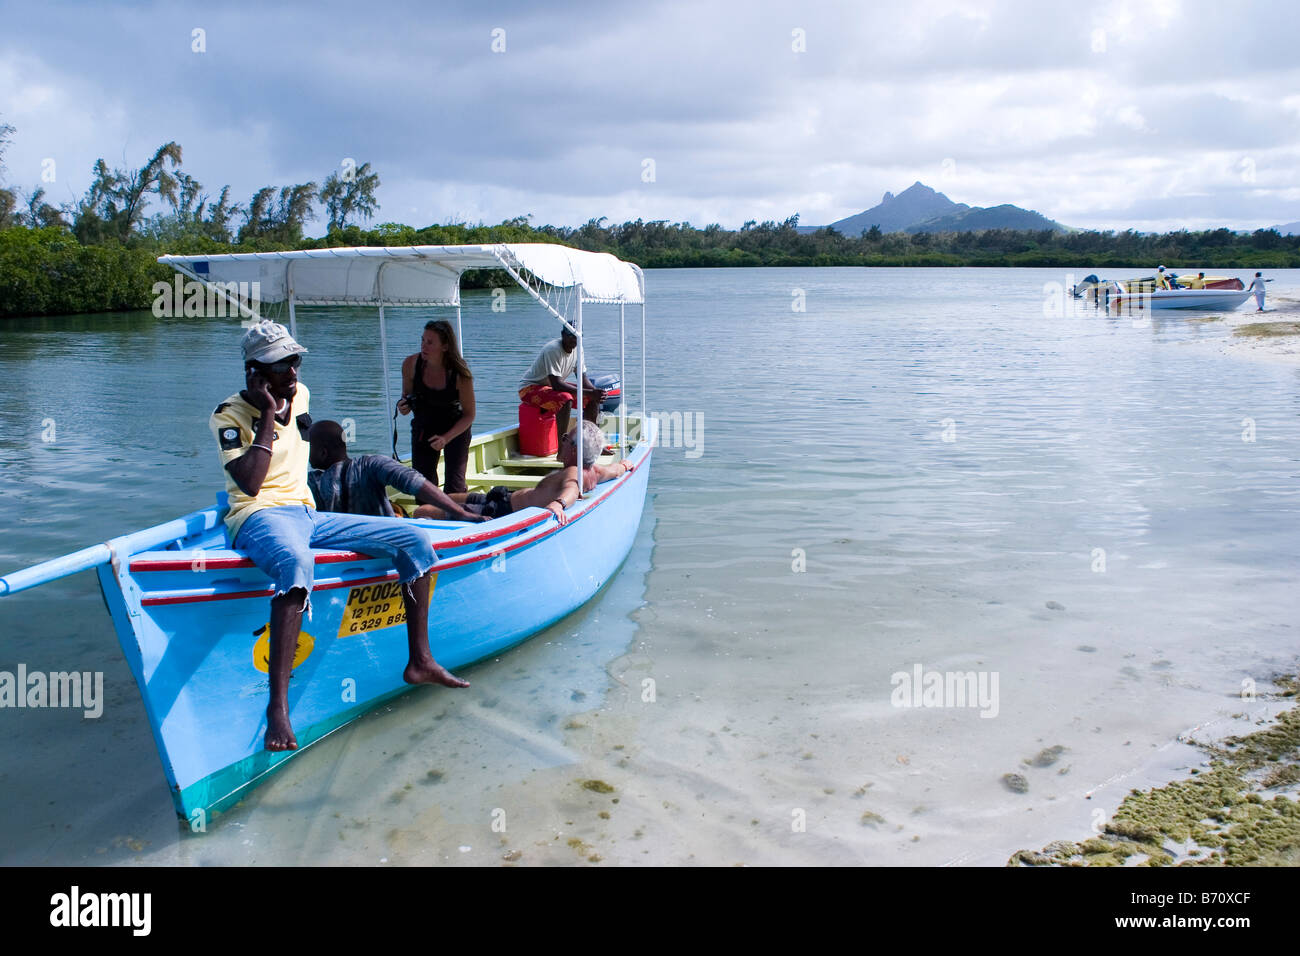 A local guide takes a break for a phone call on his boat on the island of Mauritius. - Stock Image